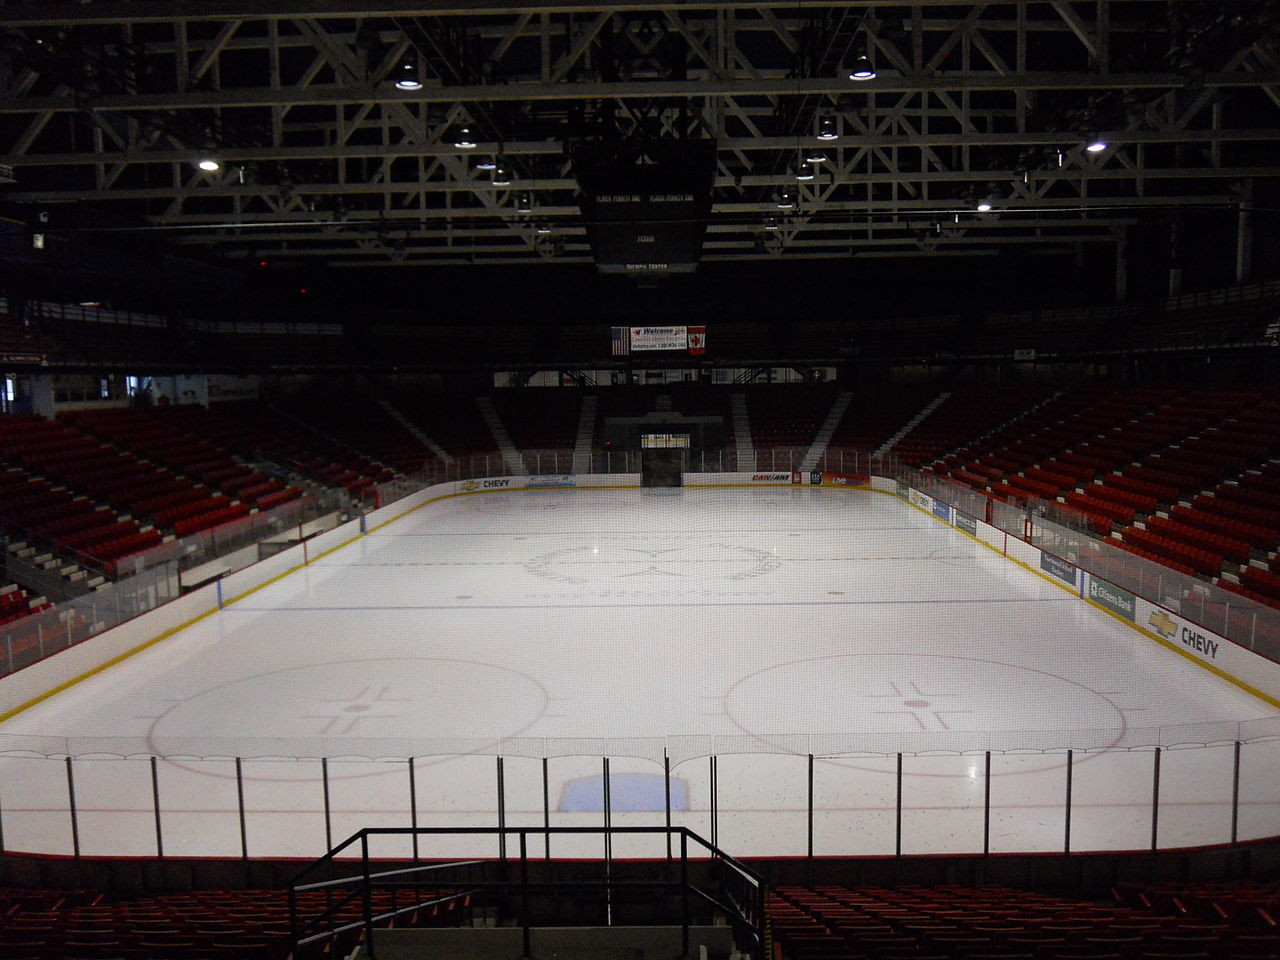 Lake Placid will host the 2023 Winter Universiade, including ice hockey at the Herb Books Arena, venue for the US ice hockey victory at the 1980 Winter Olympic Games @Wikipedia